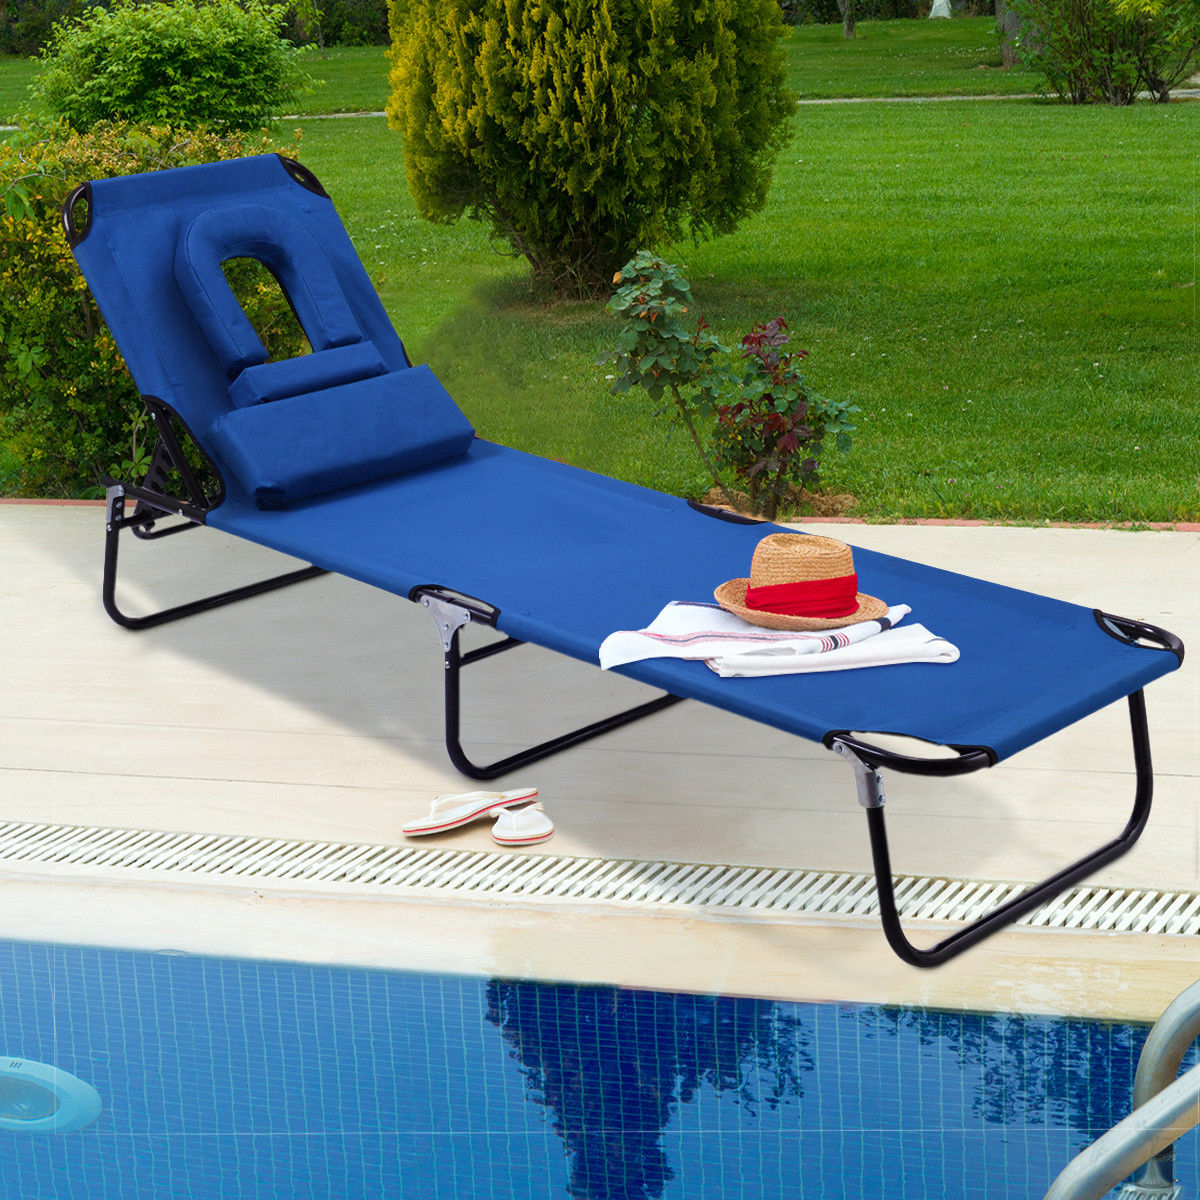 Sunbathing Chairs Costway Patio Foldable Chaise Lounge Chair Bed Outdoor Beach Camping Recliner Pool Yard